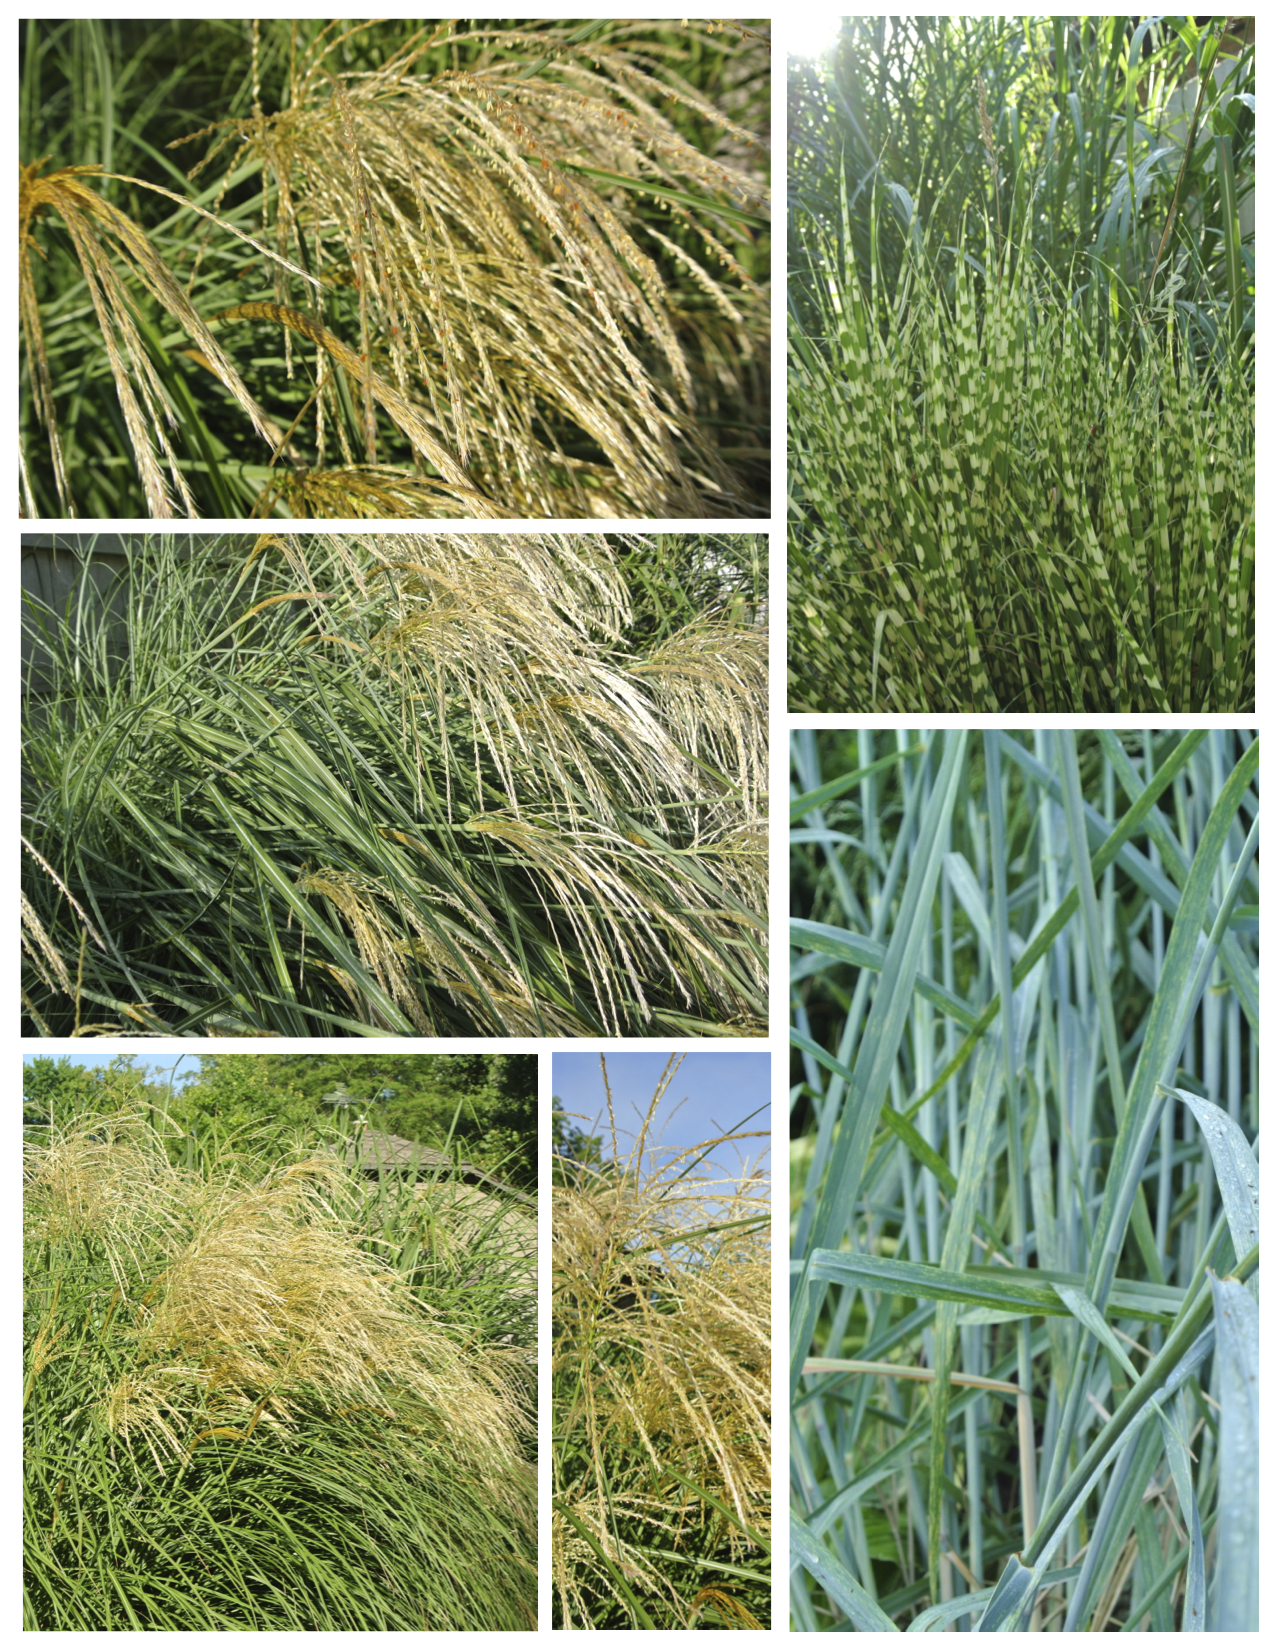 An appreciation of the plumage and bold distinction of for Decorative grasses